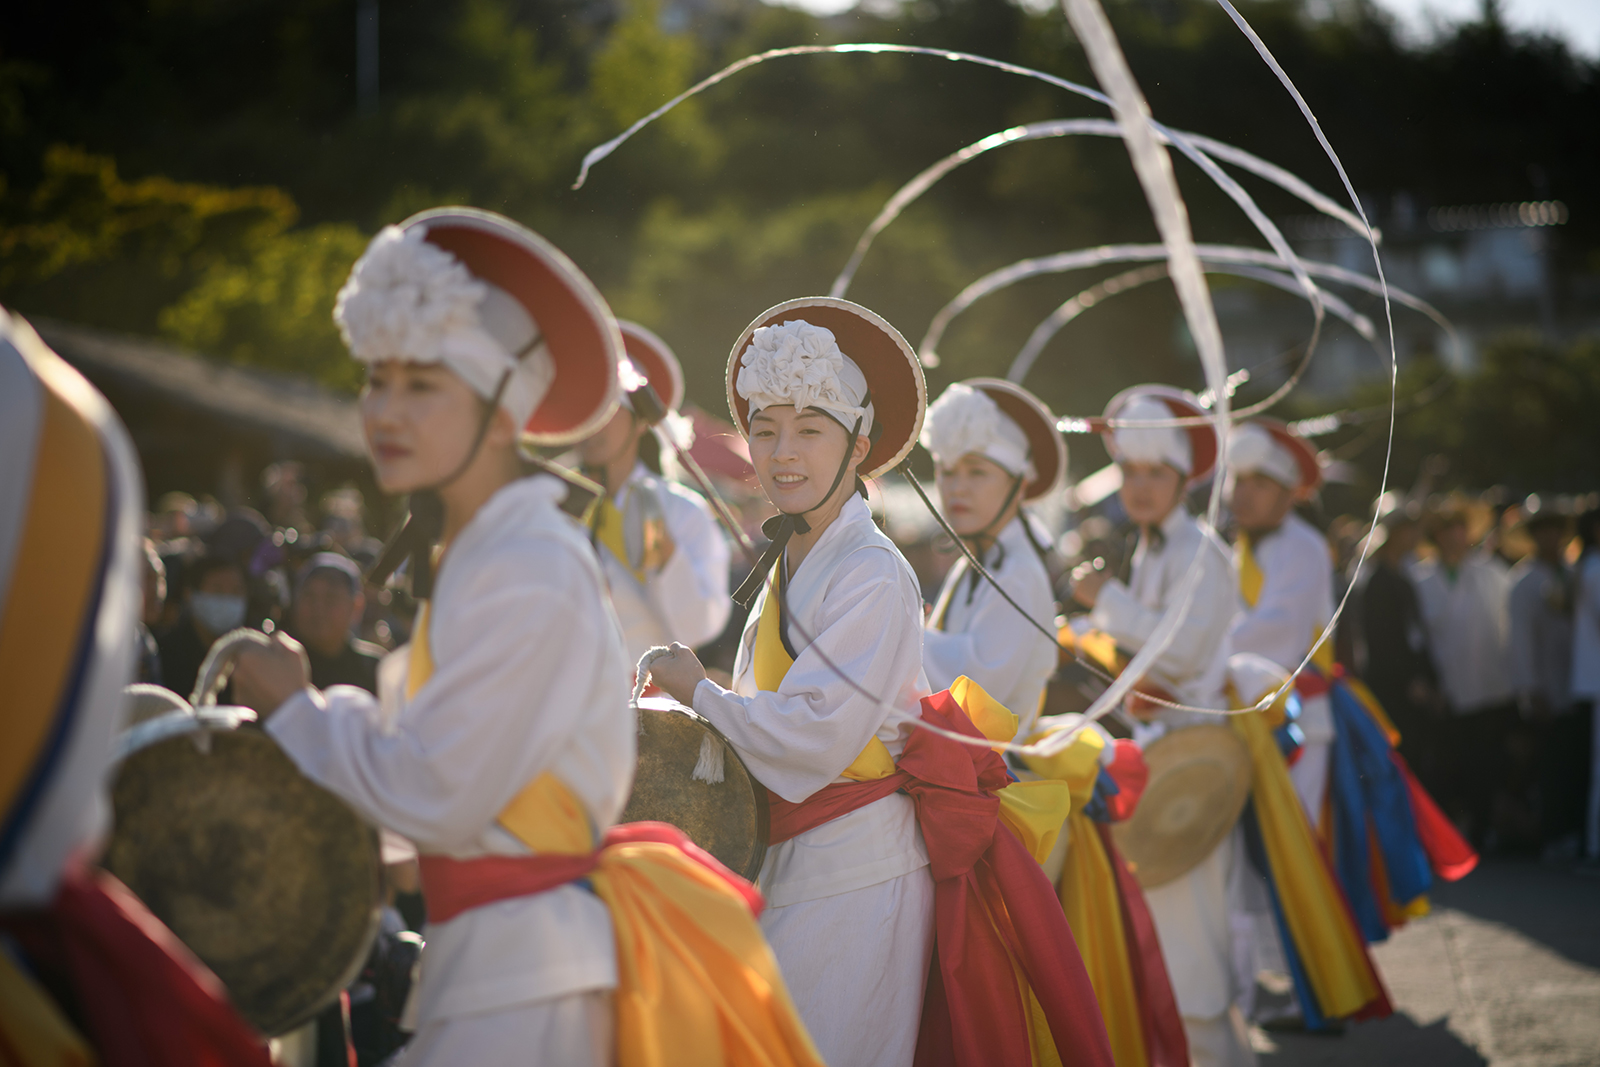 Performers take part in a traditional dance during the annual Chuseok thanksgiving holiday in Seoul, South Korea on September 24, 2018.